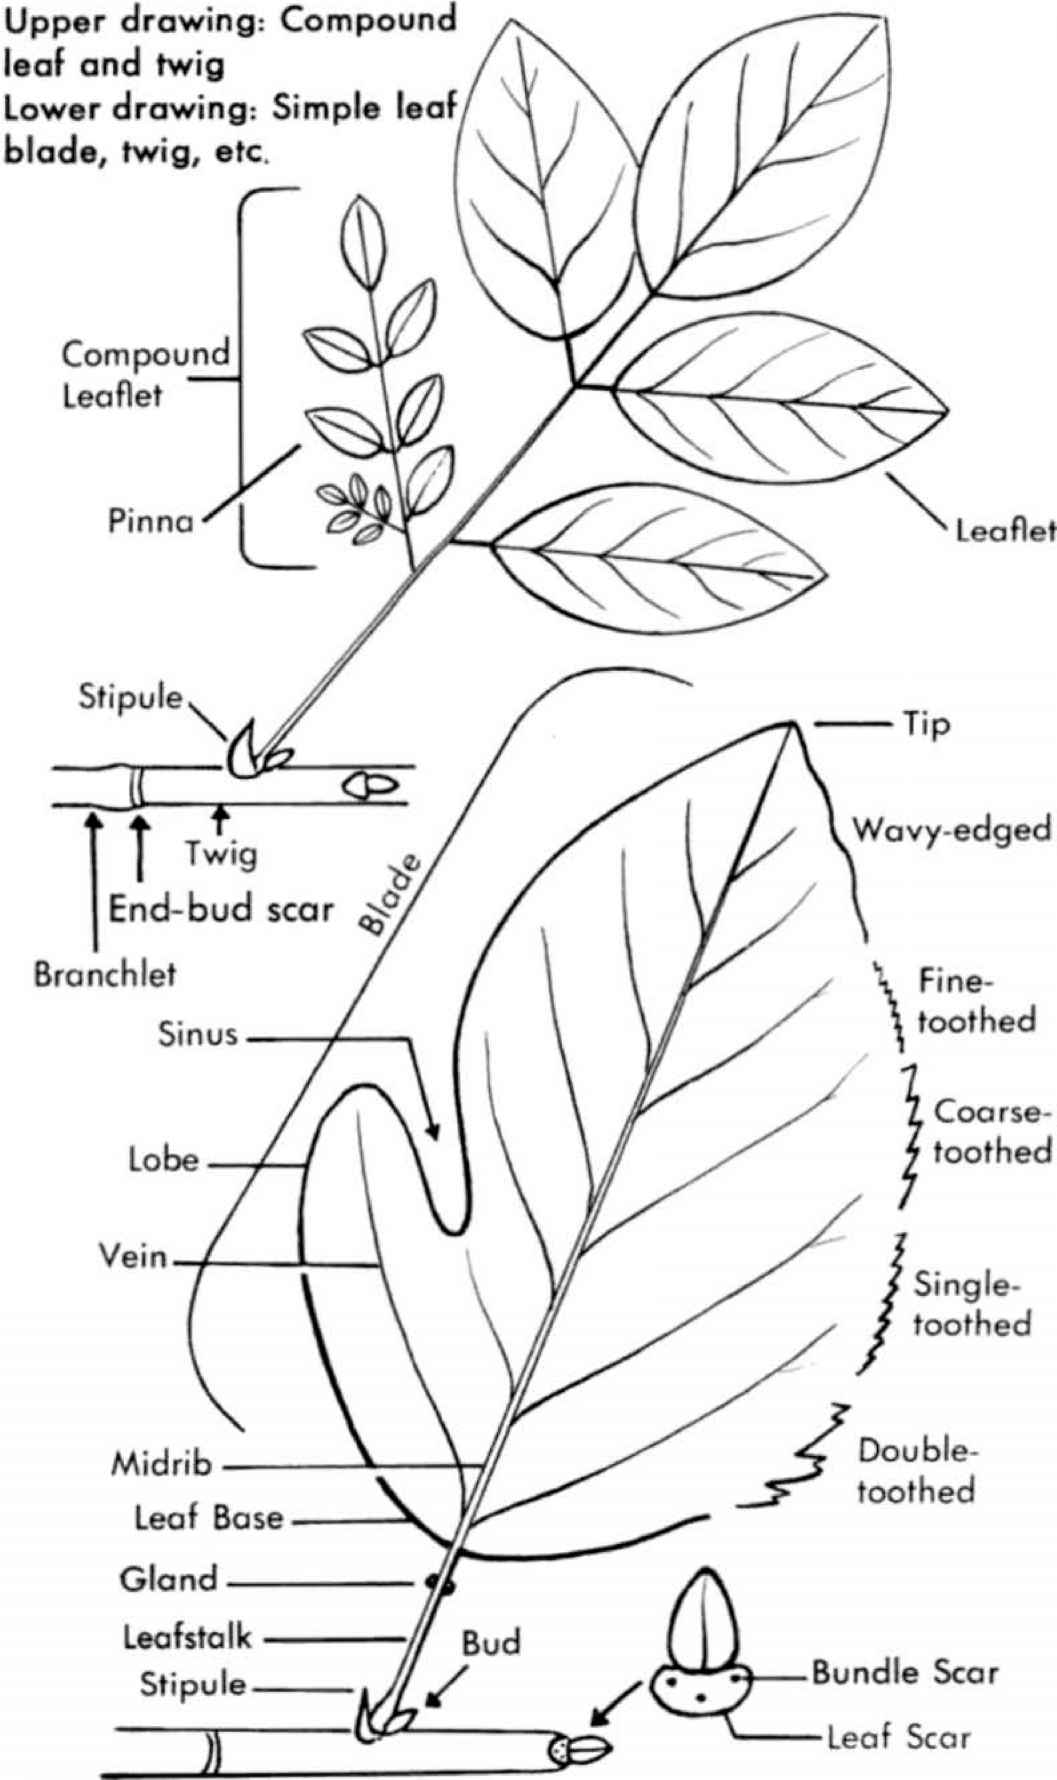 how to draw stem and leaf diagram two step dance steps use this book small tree medicinal plants archive